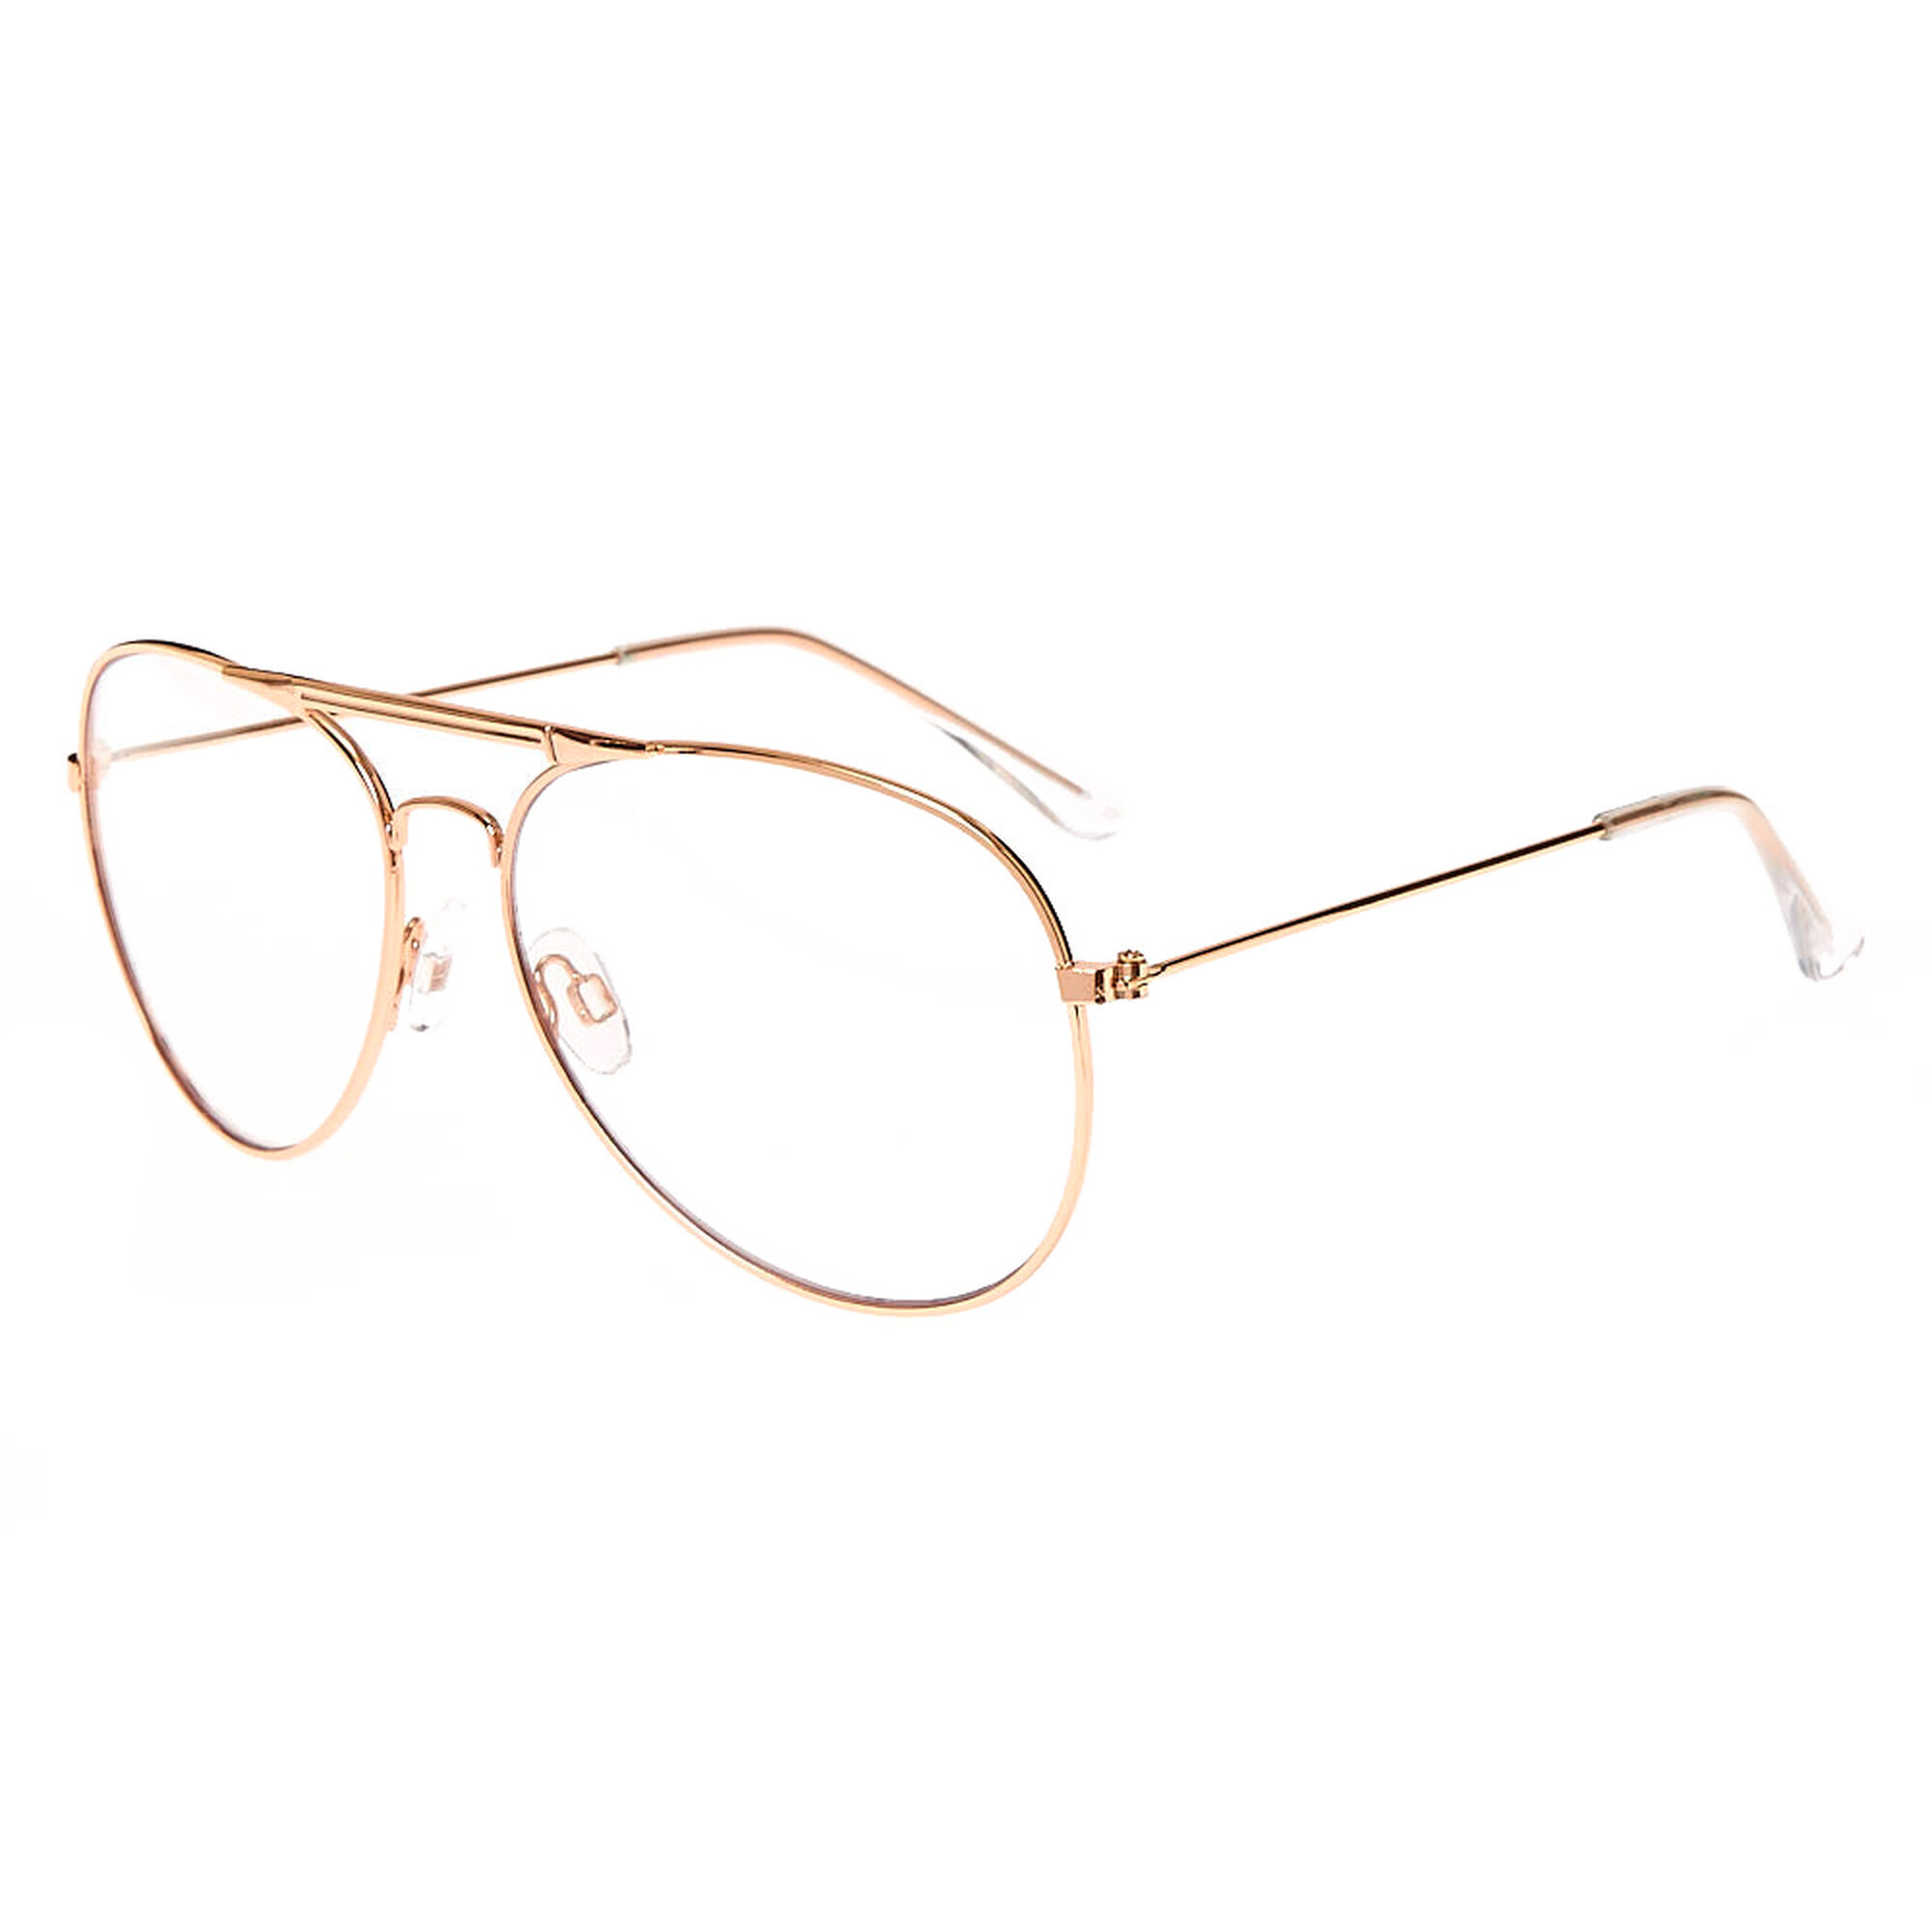 2afb507b6207 Sunglass With Real Gold Frames